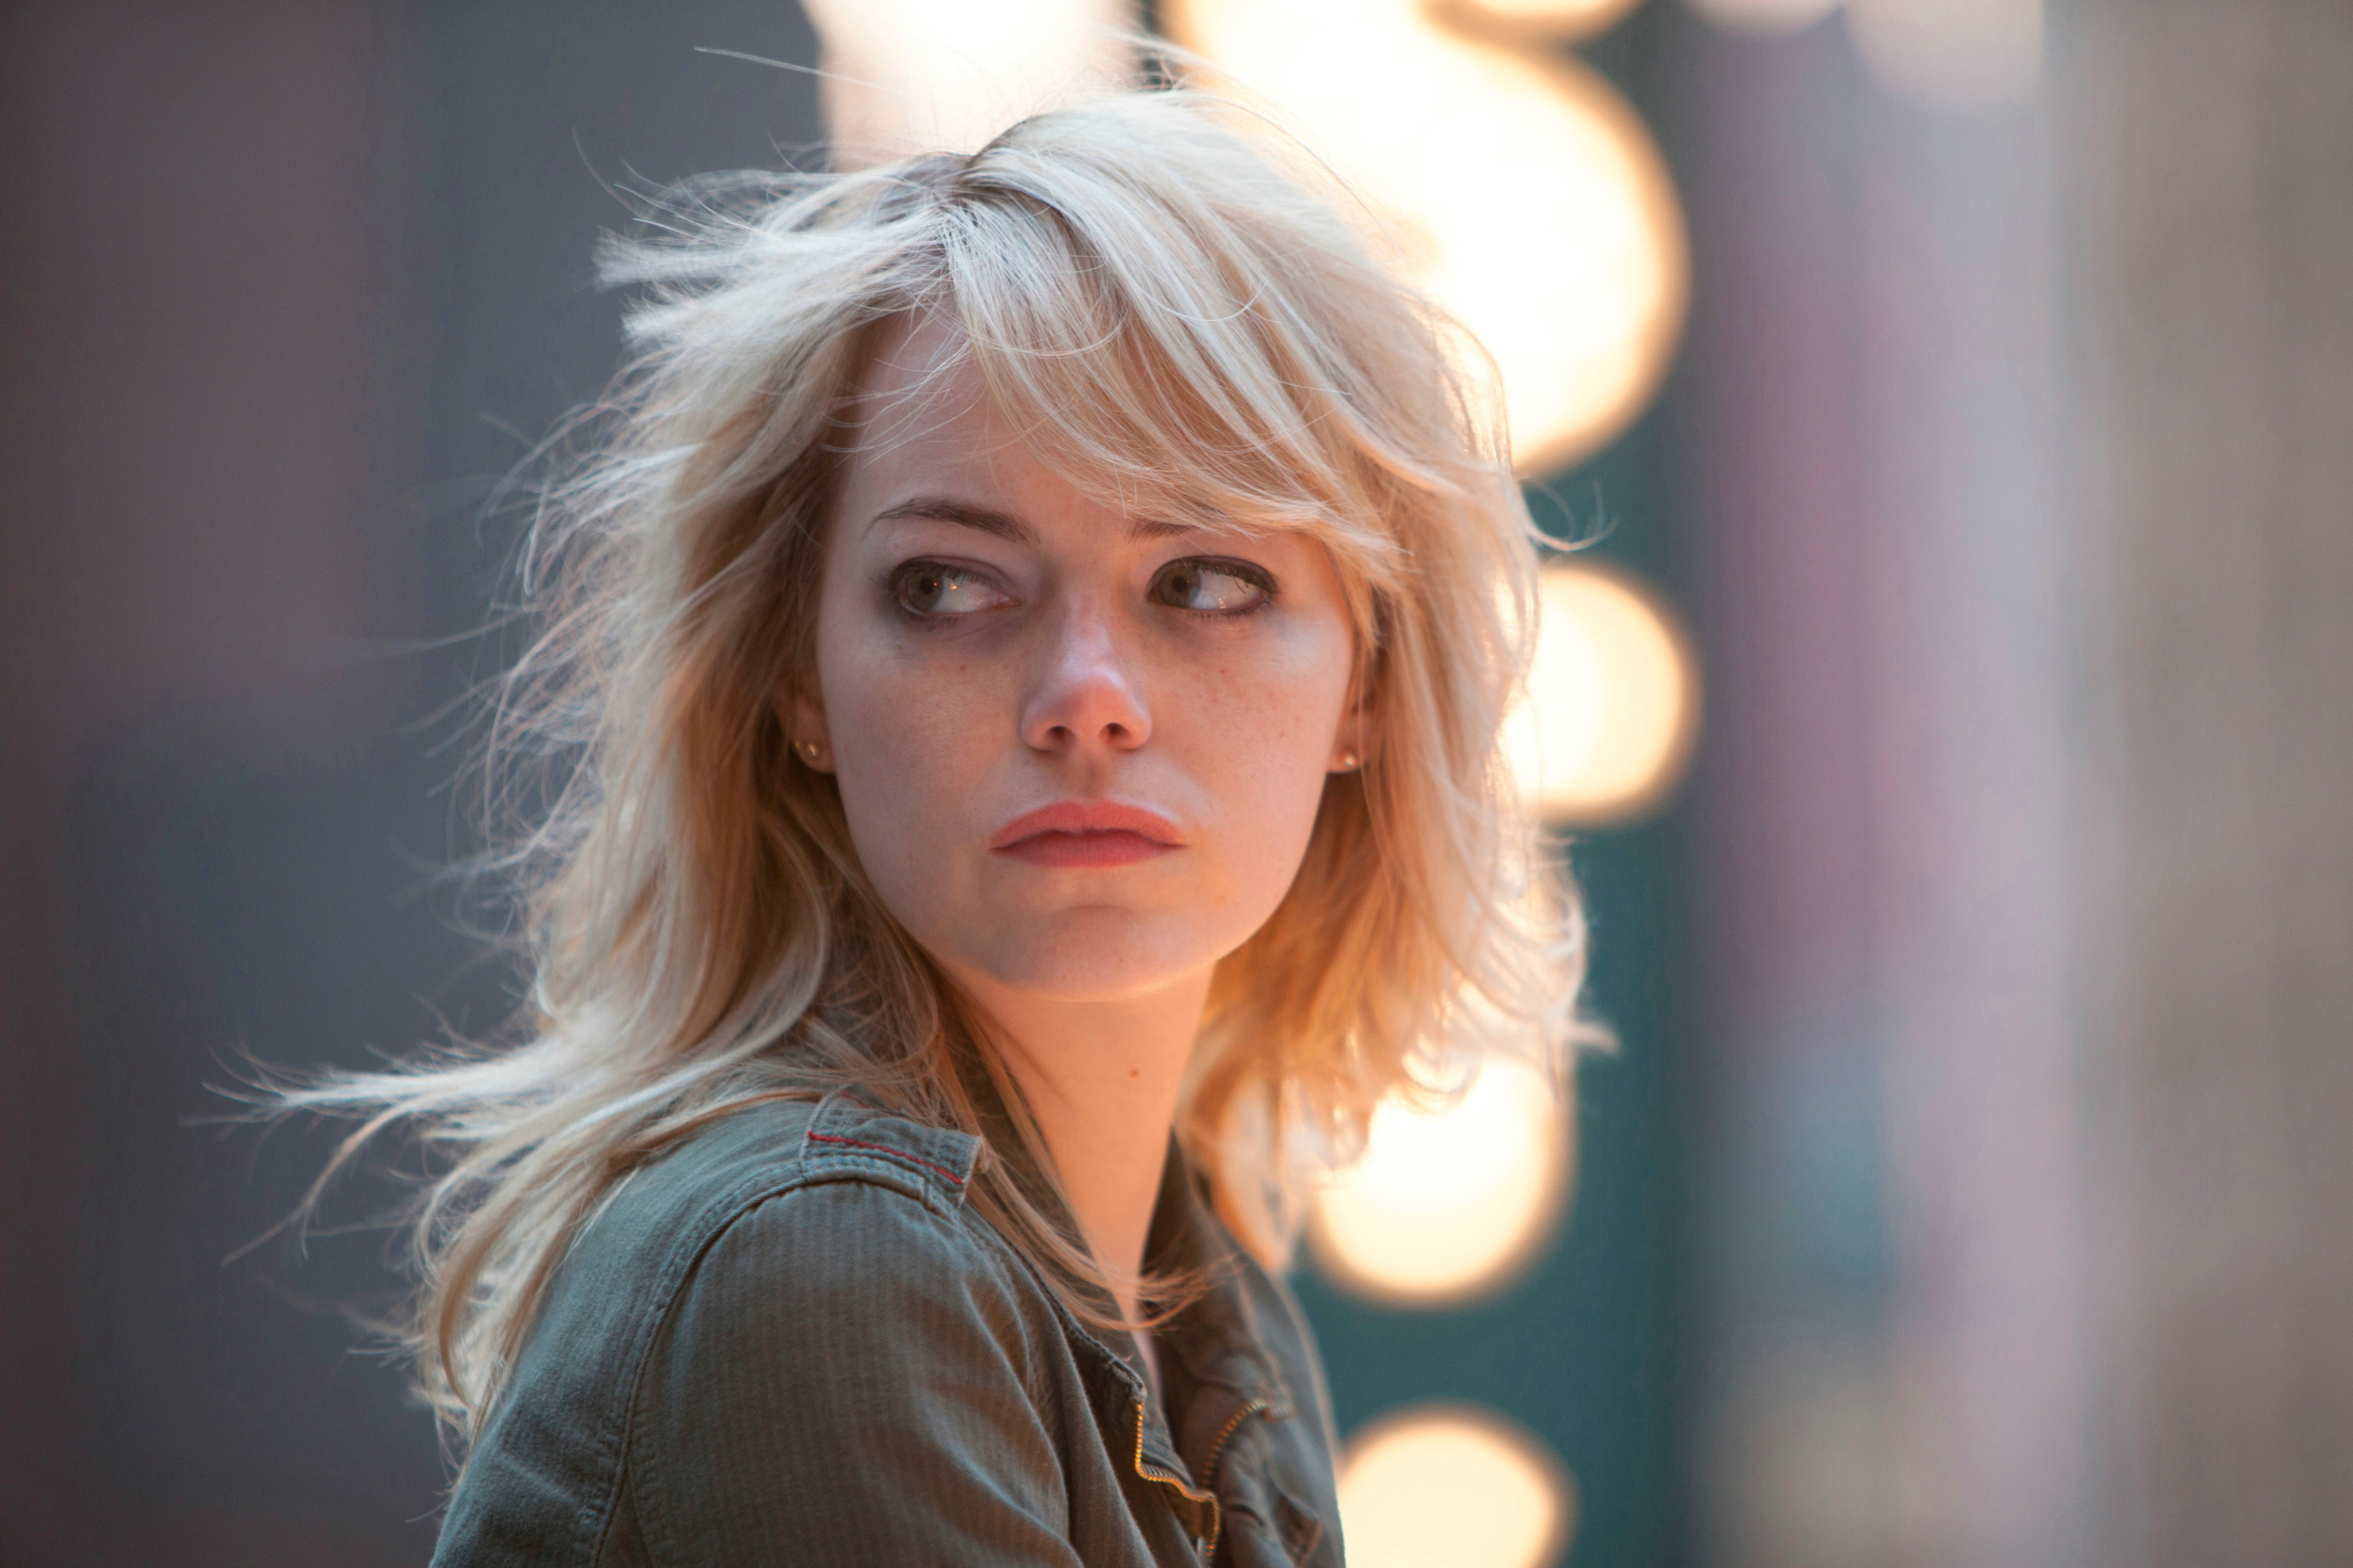 emma stone 4k widescreen desktop wallpaper 1384